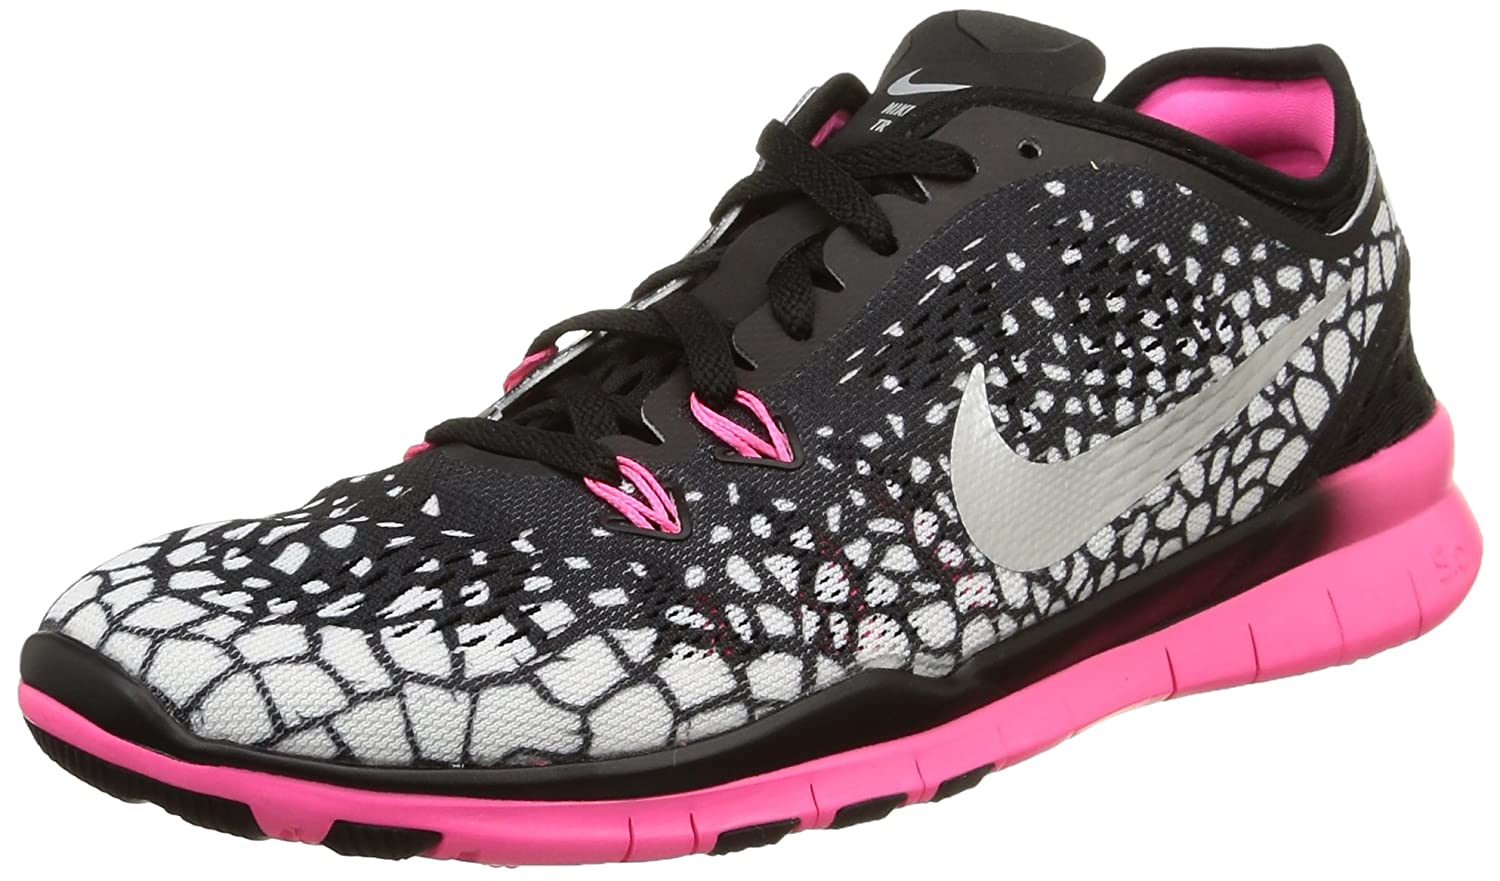 NIKE Women's Free 5.0 TR Fit 5 Training Shoe B00Q5XBKVO 7 B(M) US|Black/Pink/White/Metallic Silver